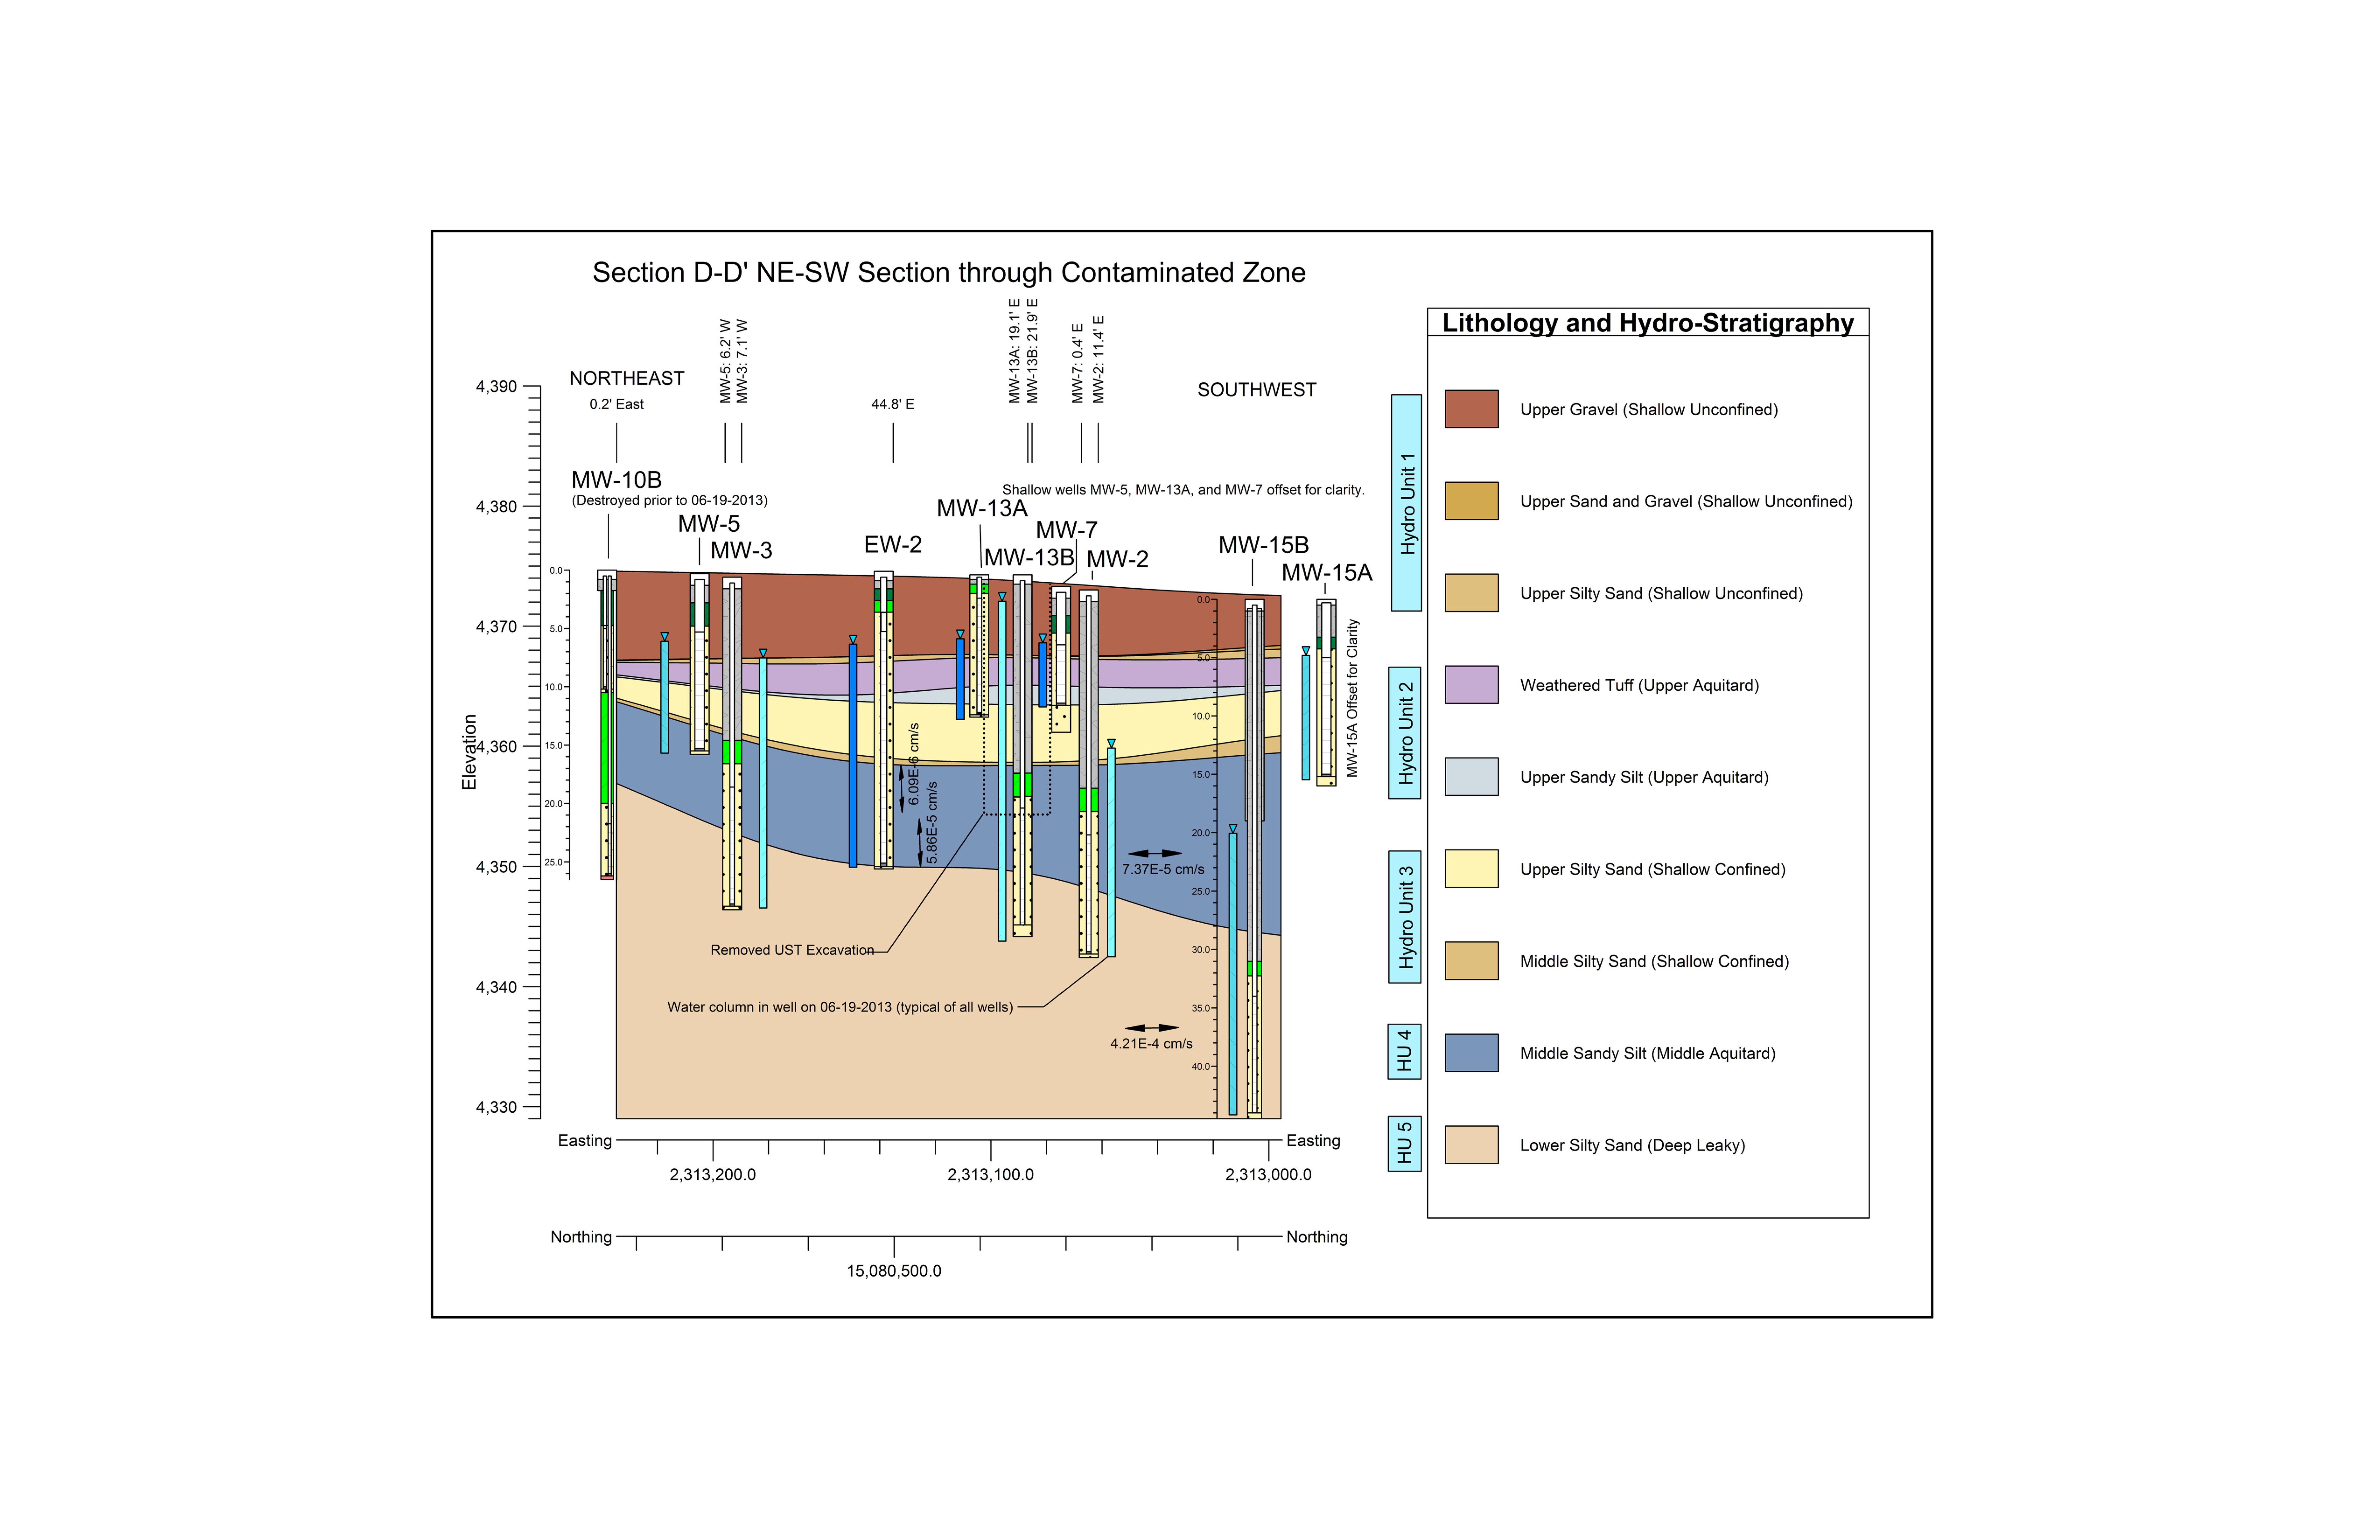 rockplot-hydro-stratigraphic_section_d-d_contaminated_zone